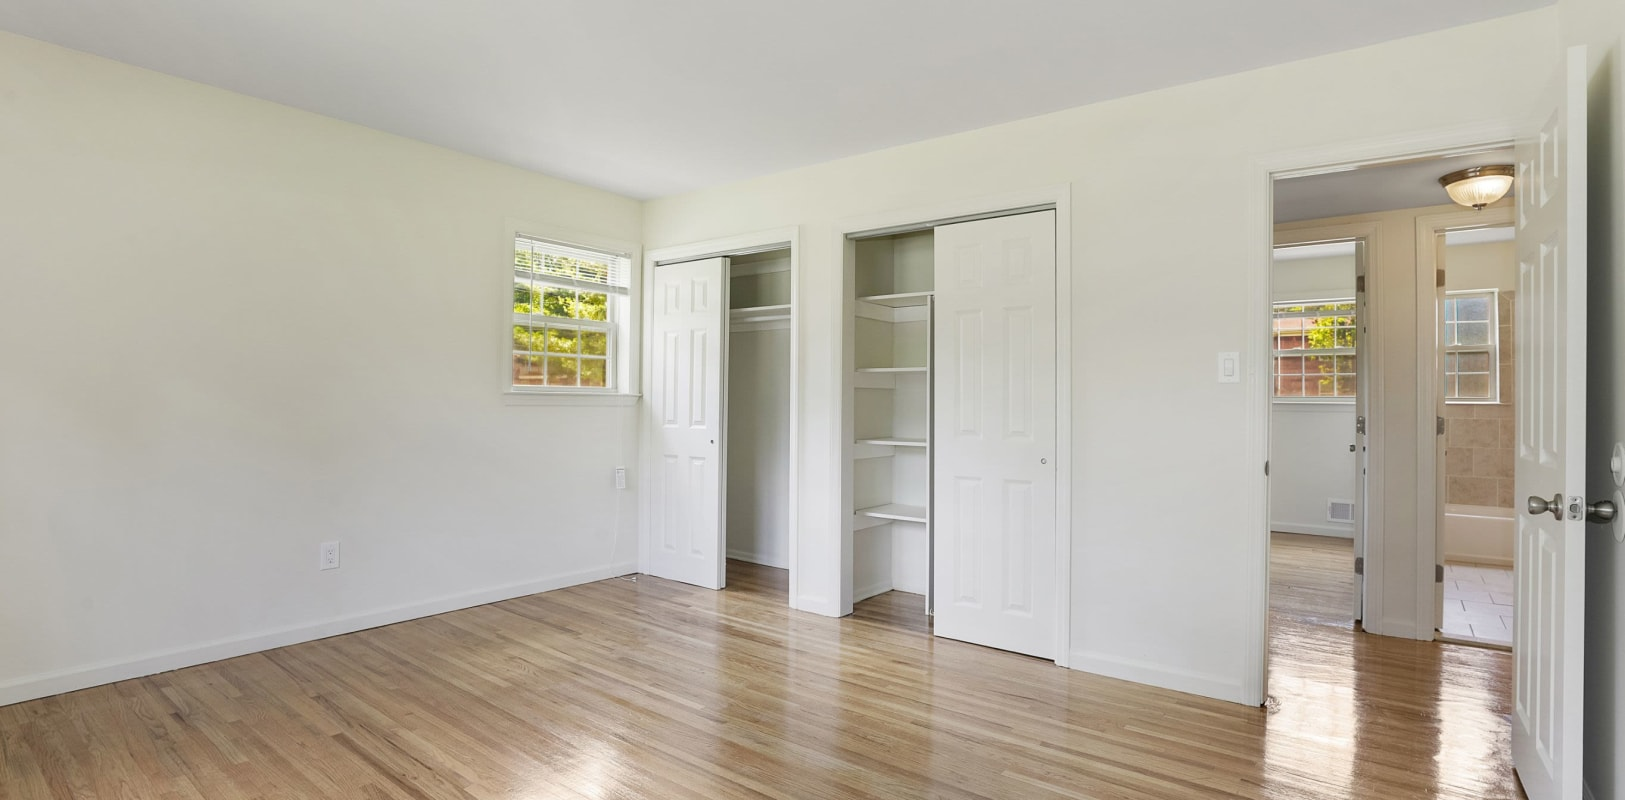 Bedroom with plenty of closet space at Madison Arms in Old Bridge, New Jersey